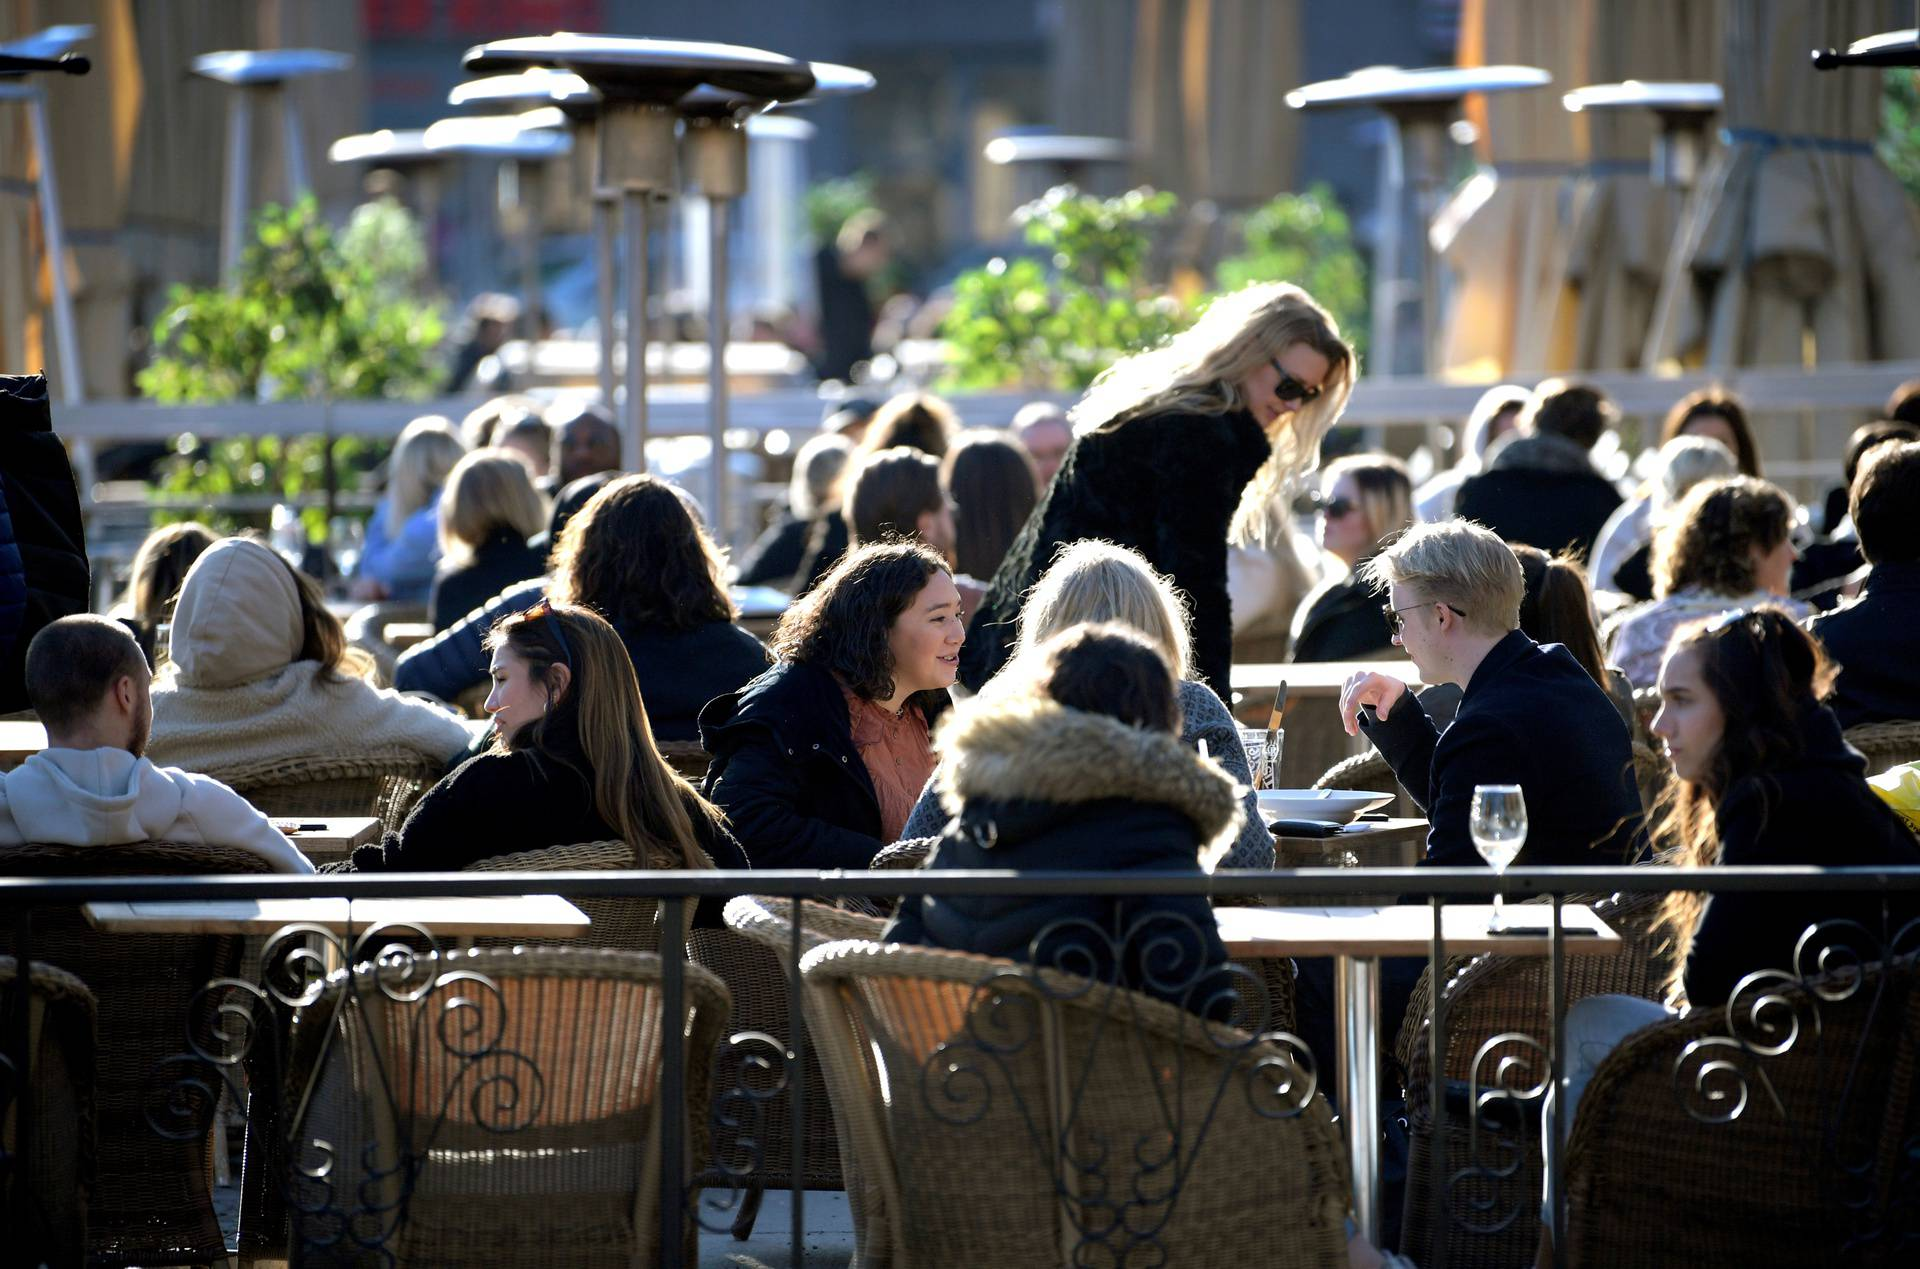 FILE PHOTO: People enjoy the sun at an outdoor restaurant, despite the continuing spread of the coronavirus disease (COVID-19), in Stockholm